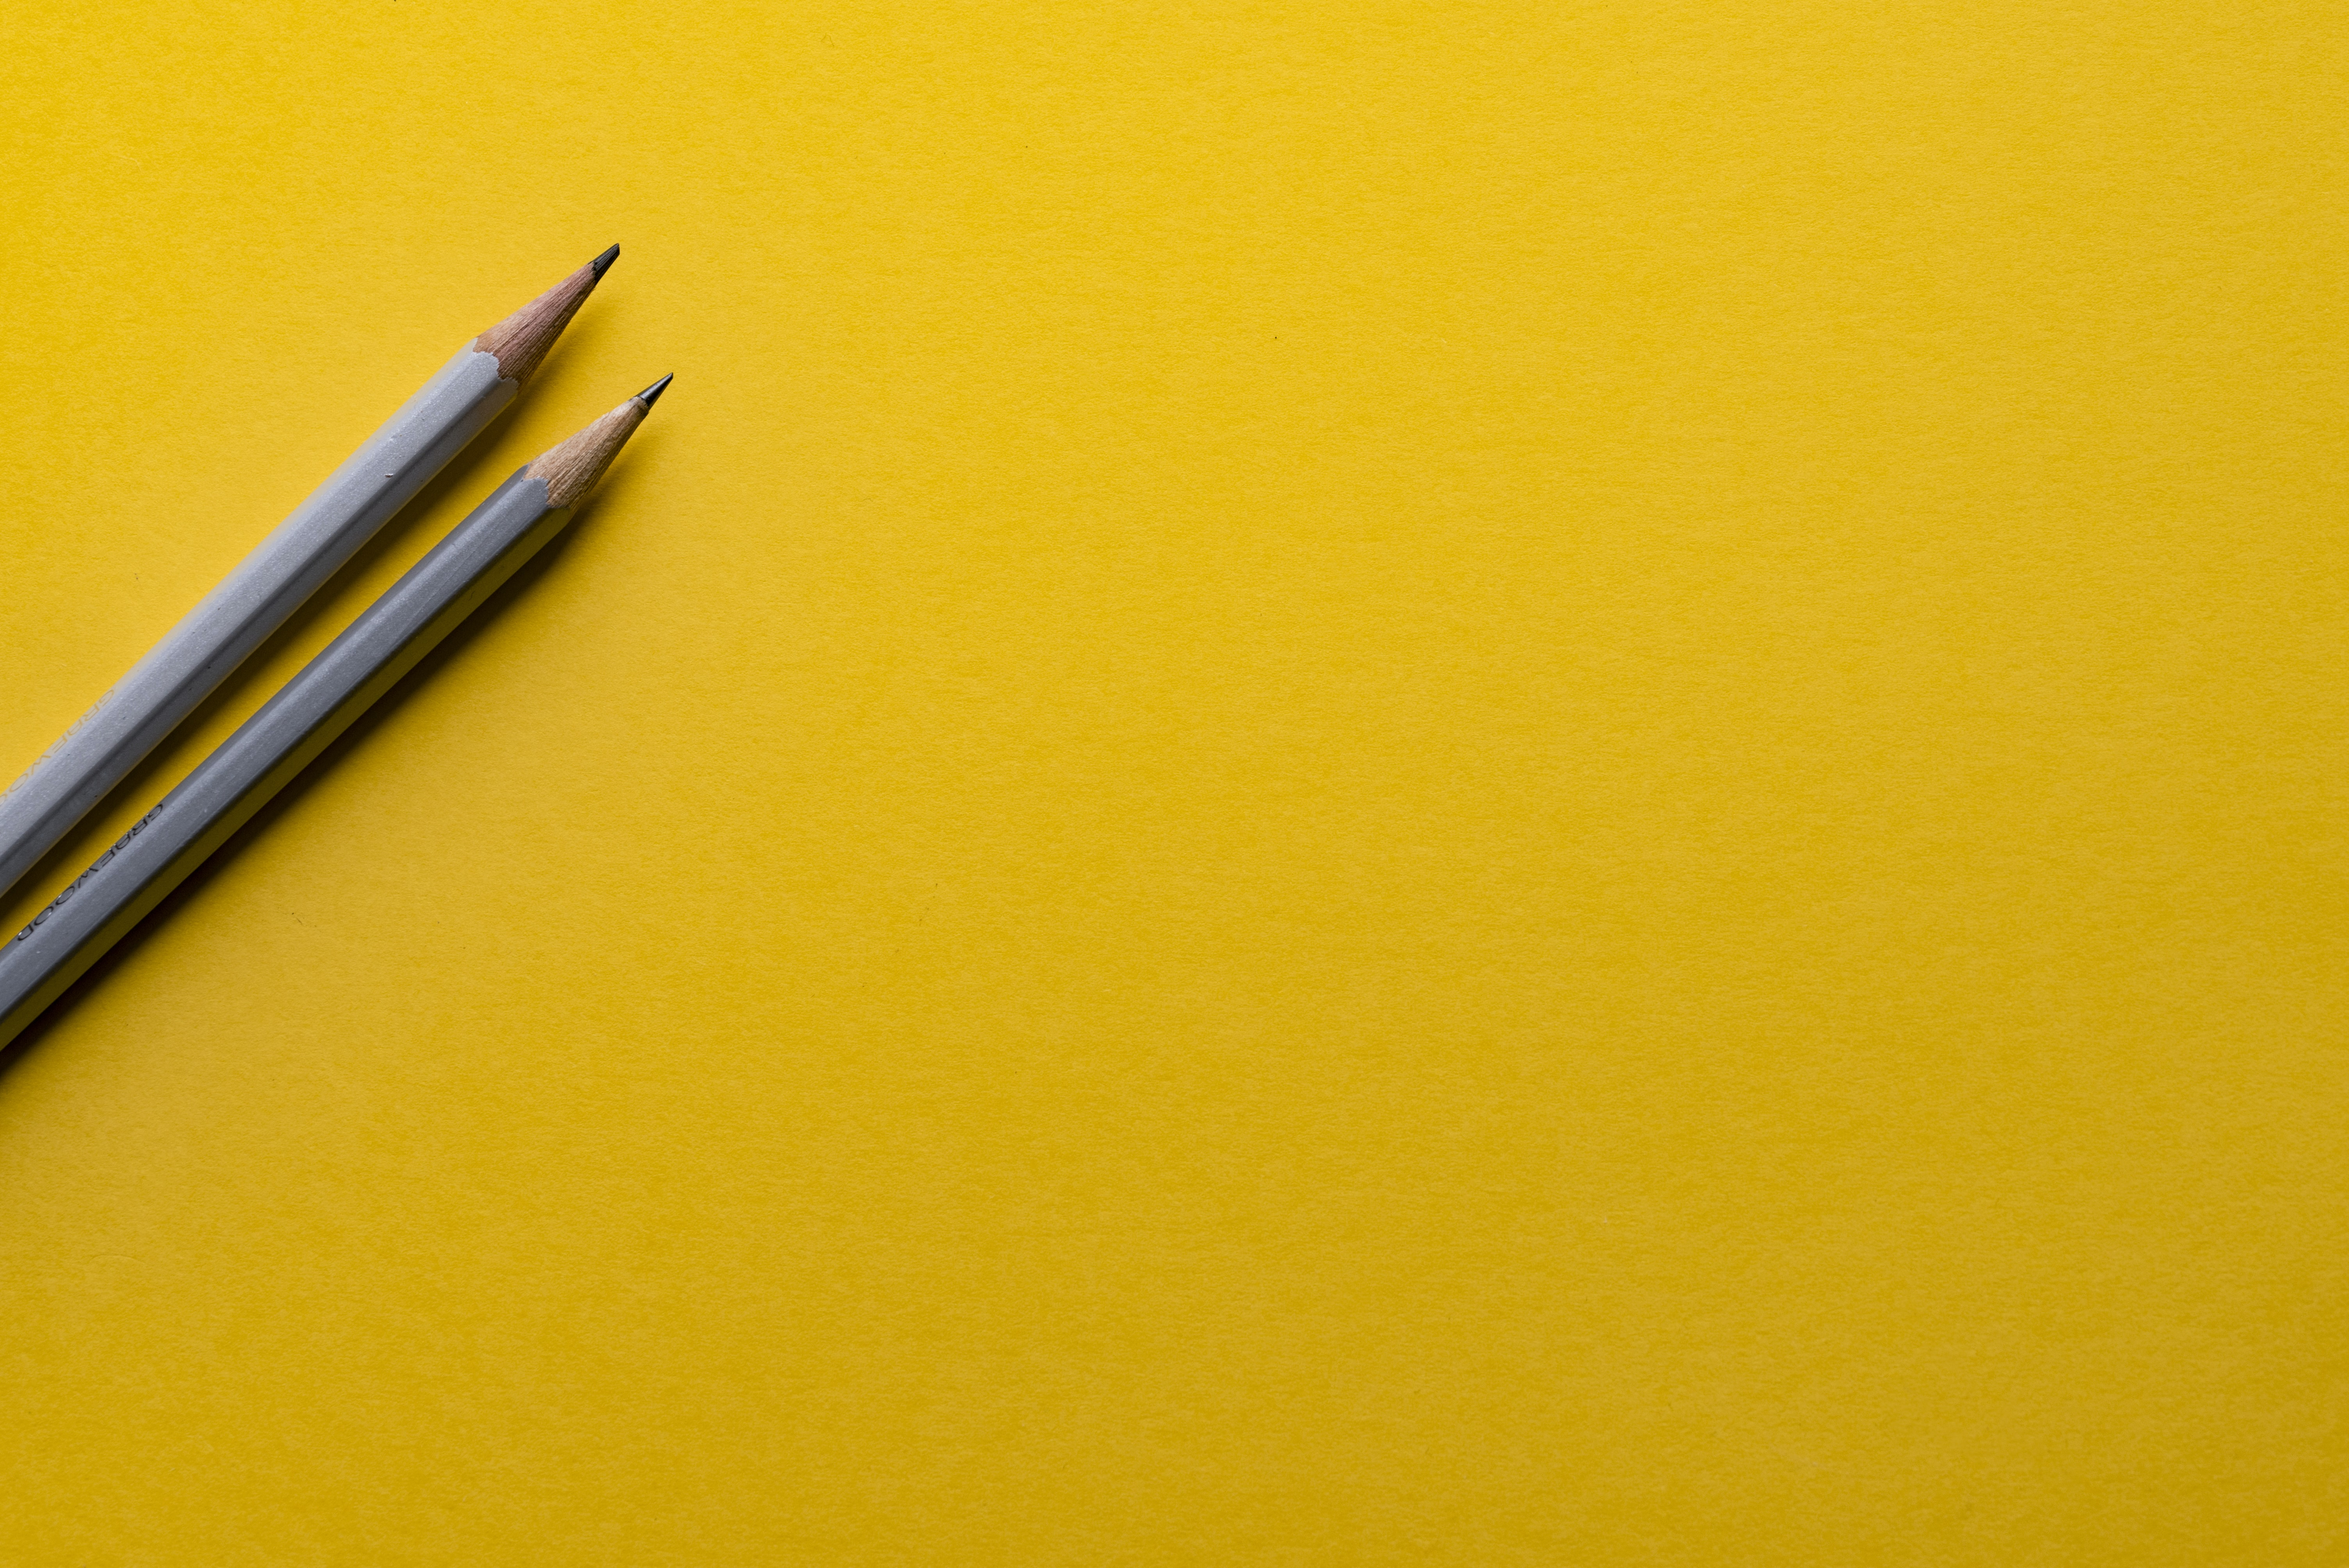 Two gray pencils on a yellow surface